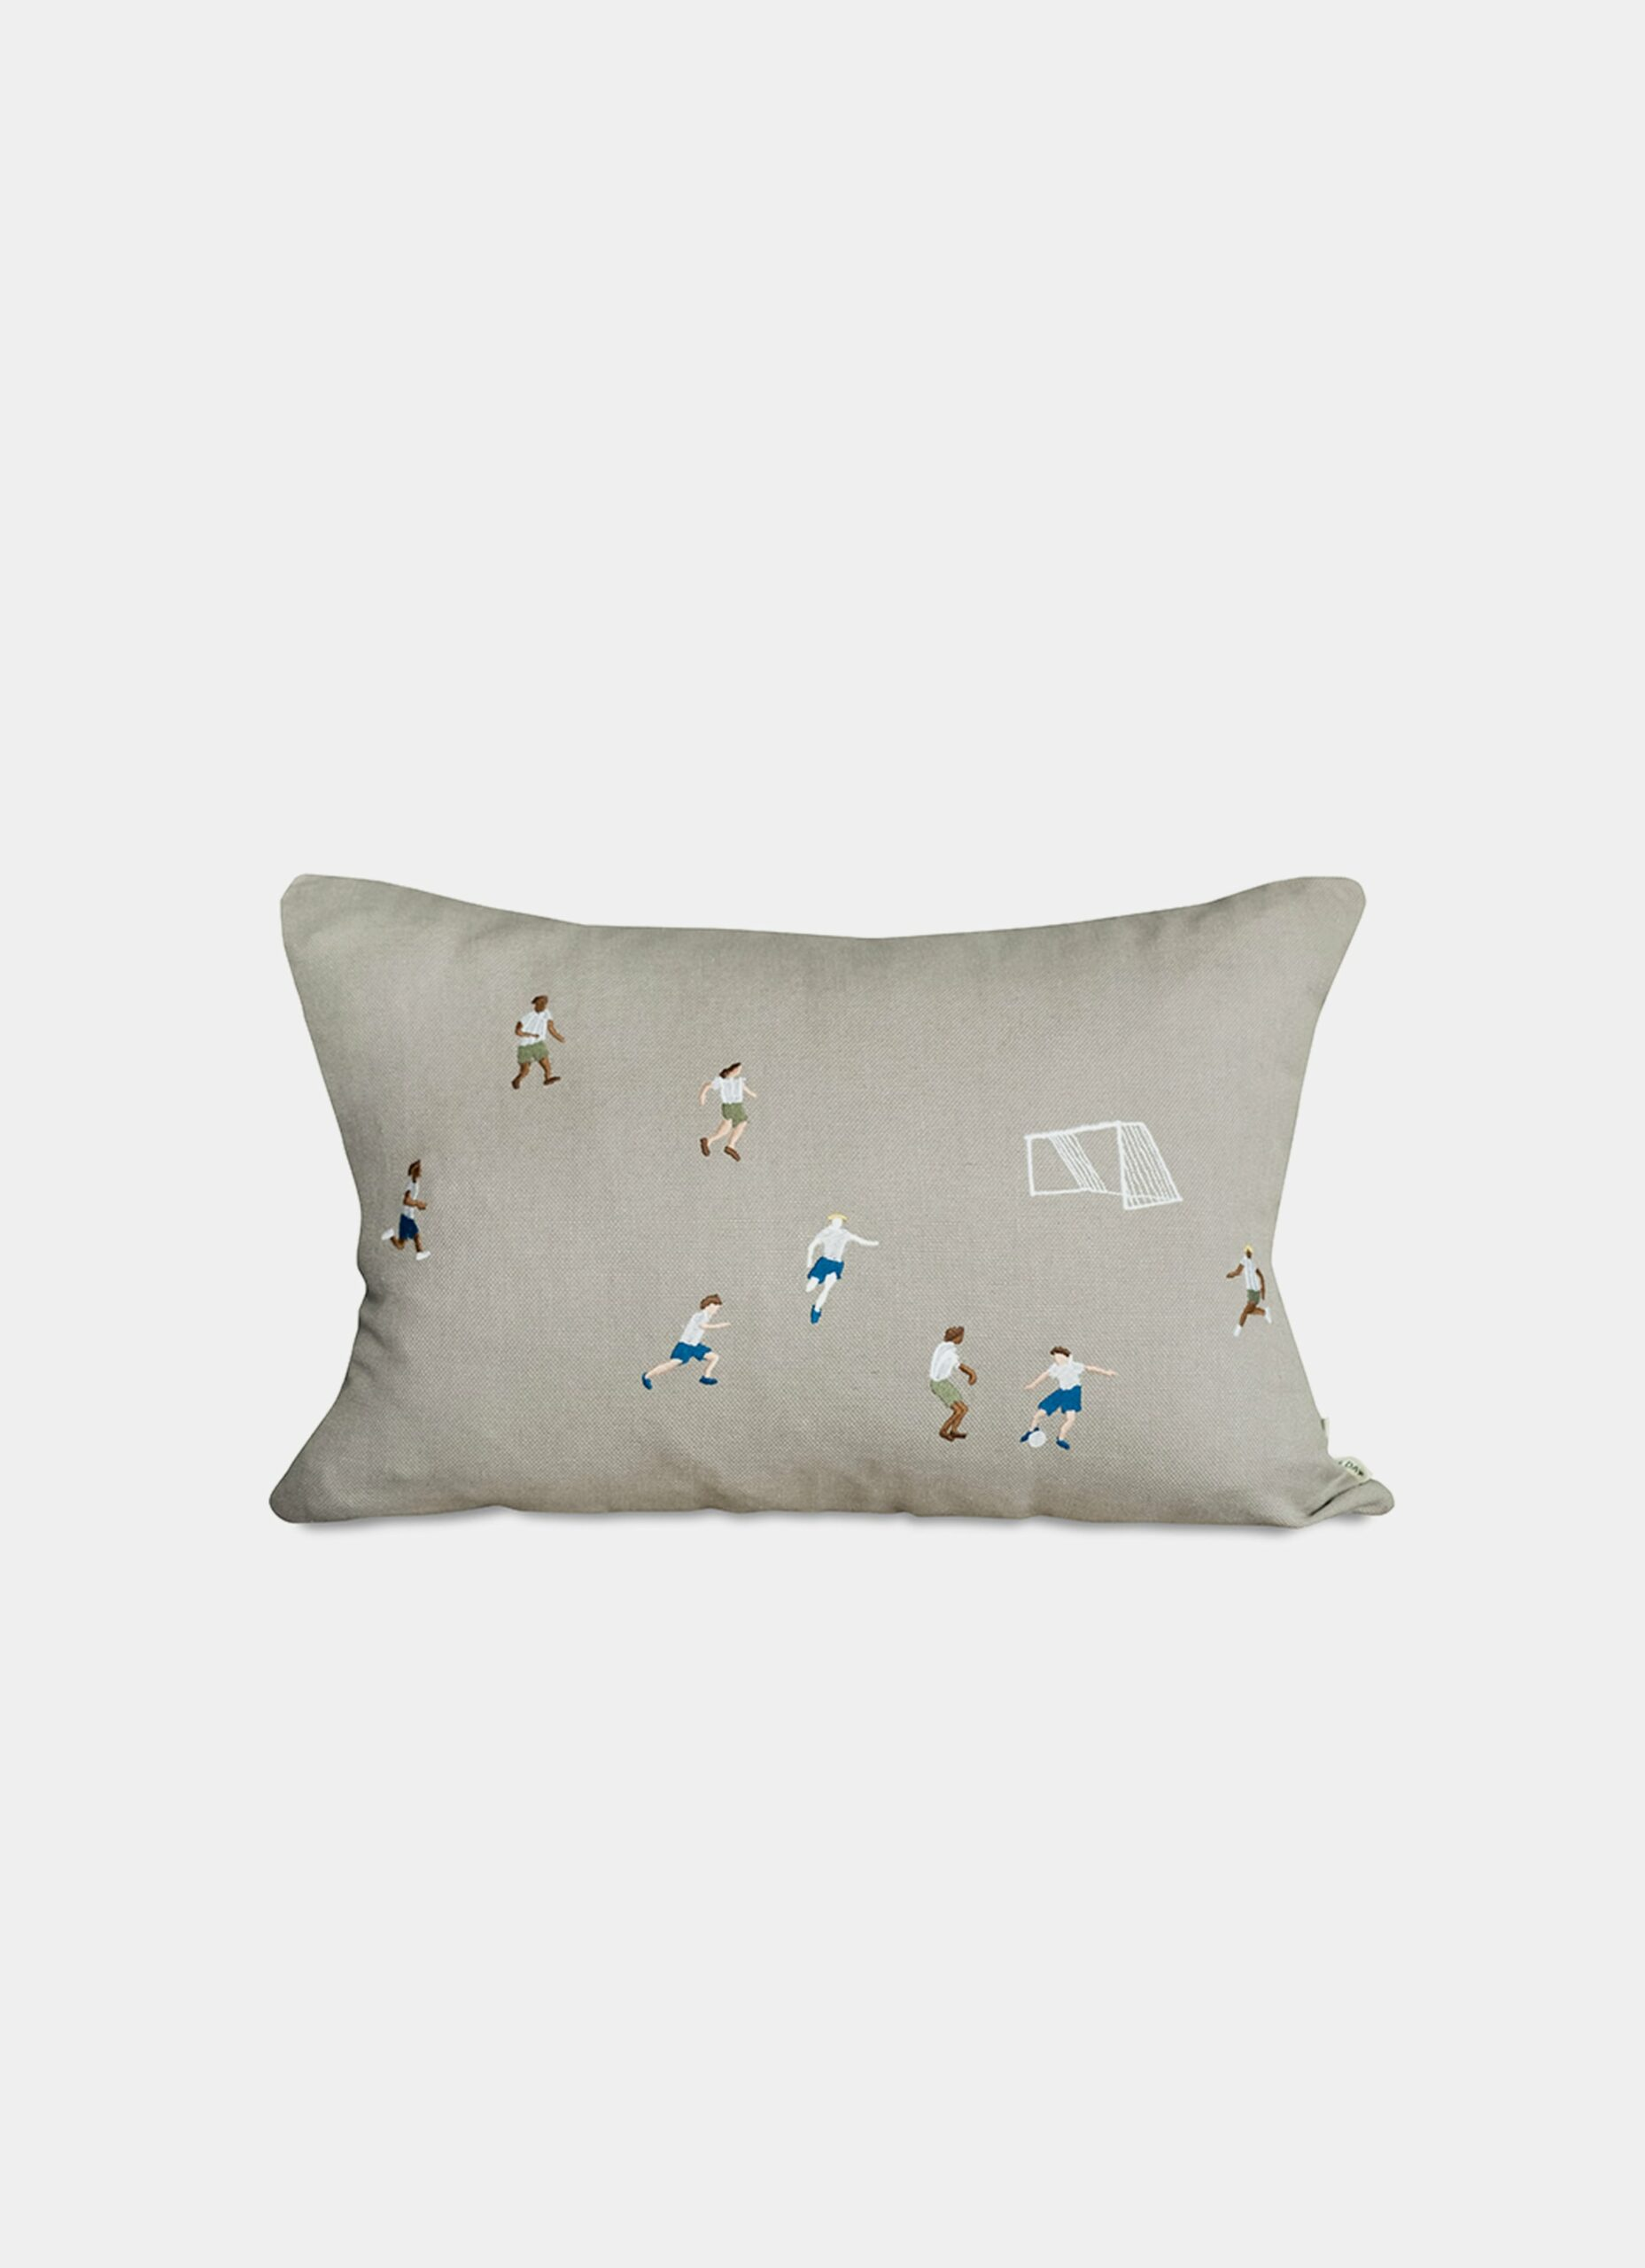 Fine Little Day - Soccer - Embroidered Cushion Cover - 40x60cm